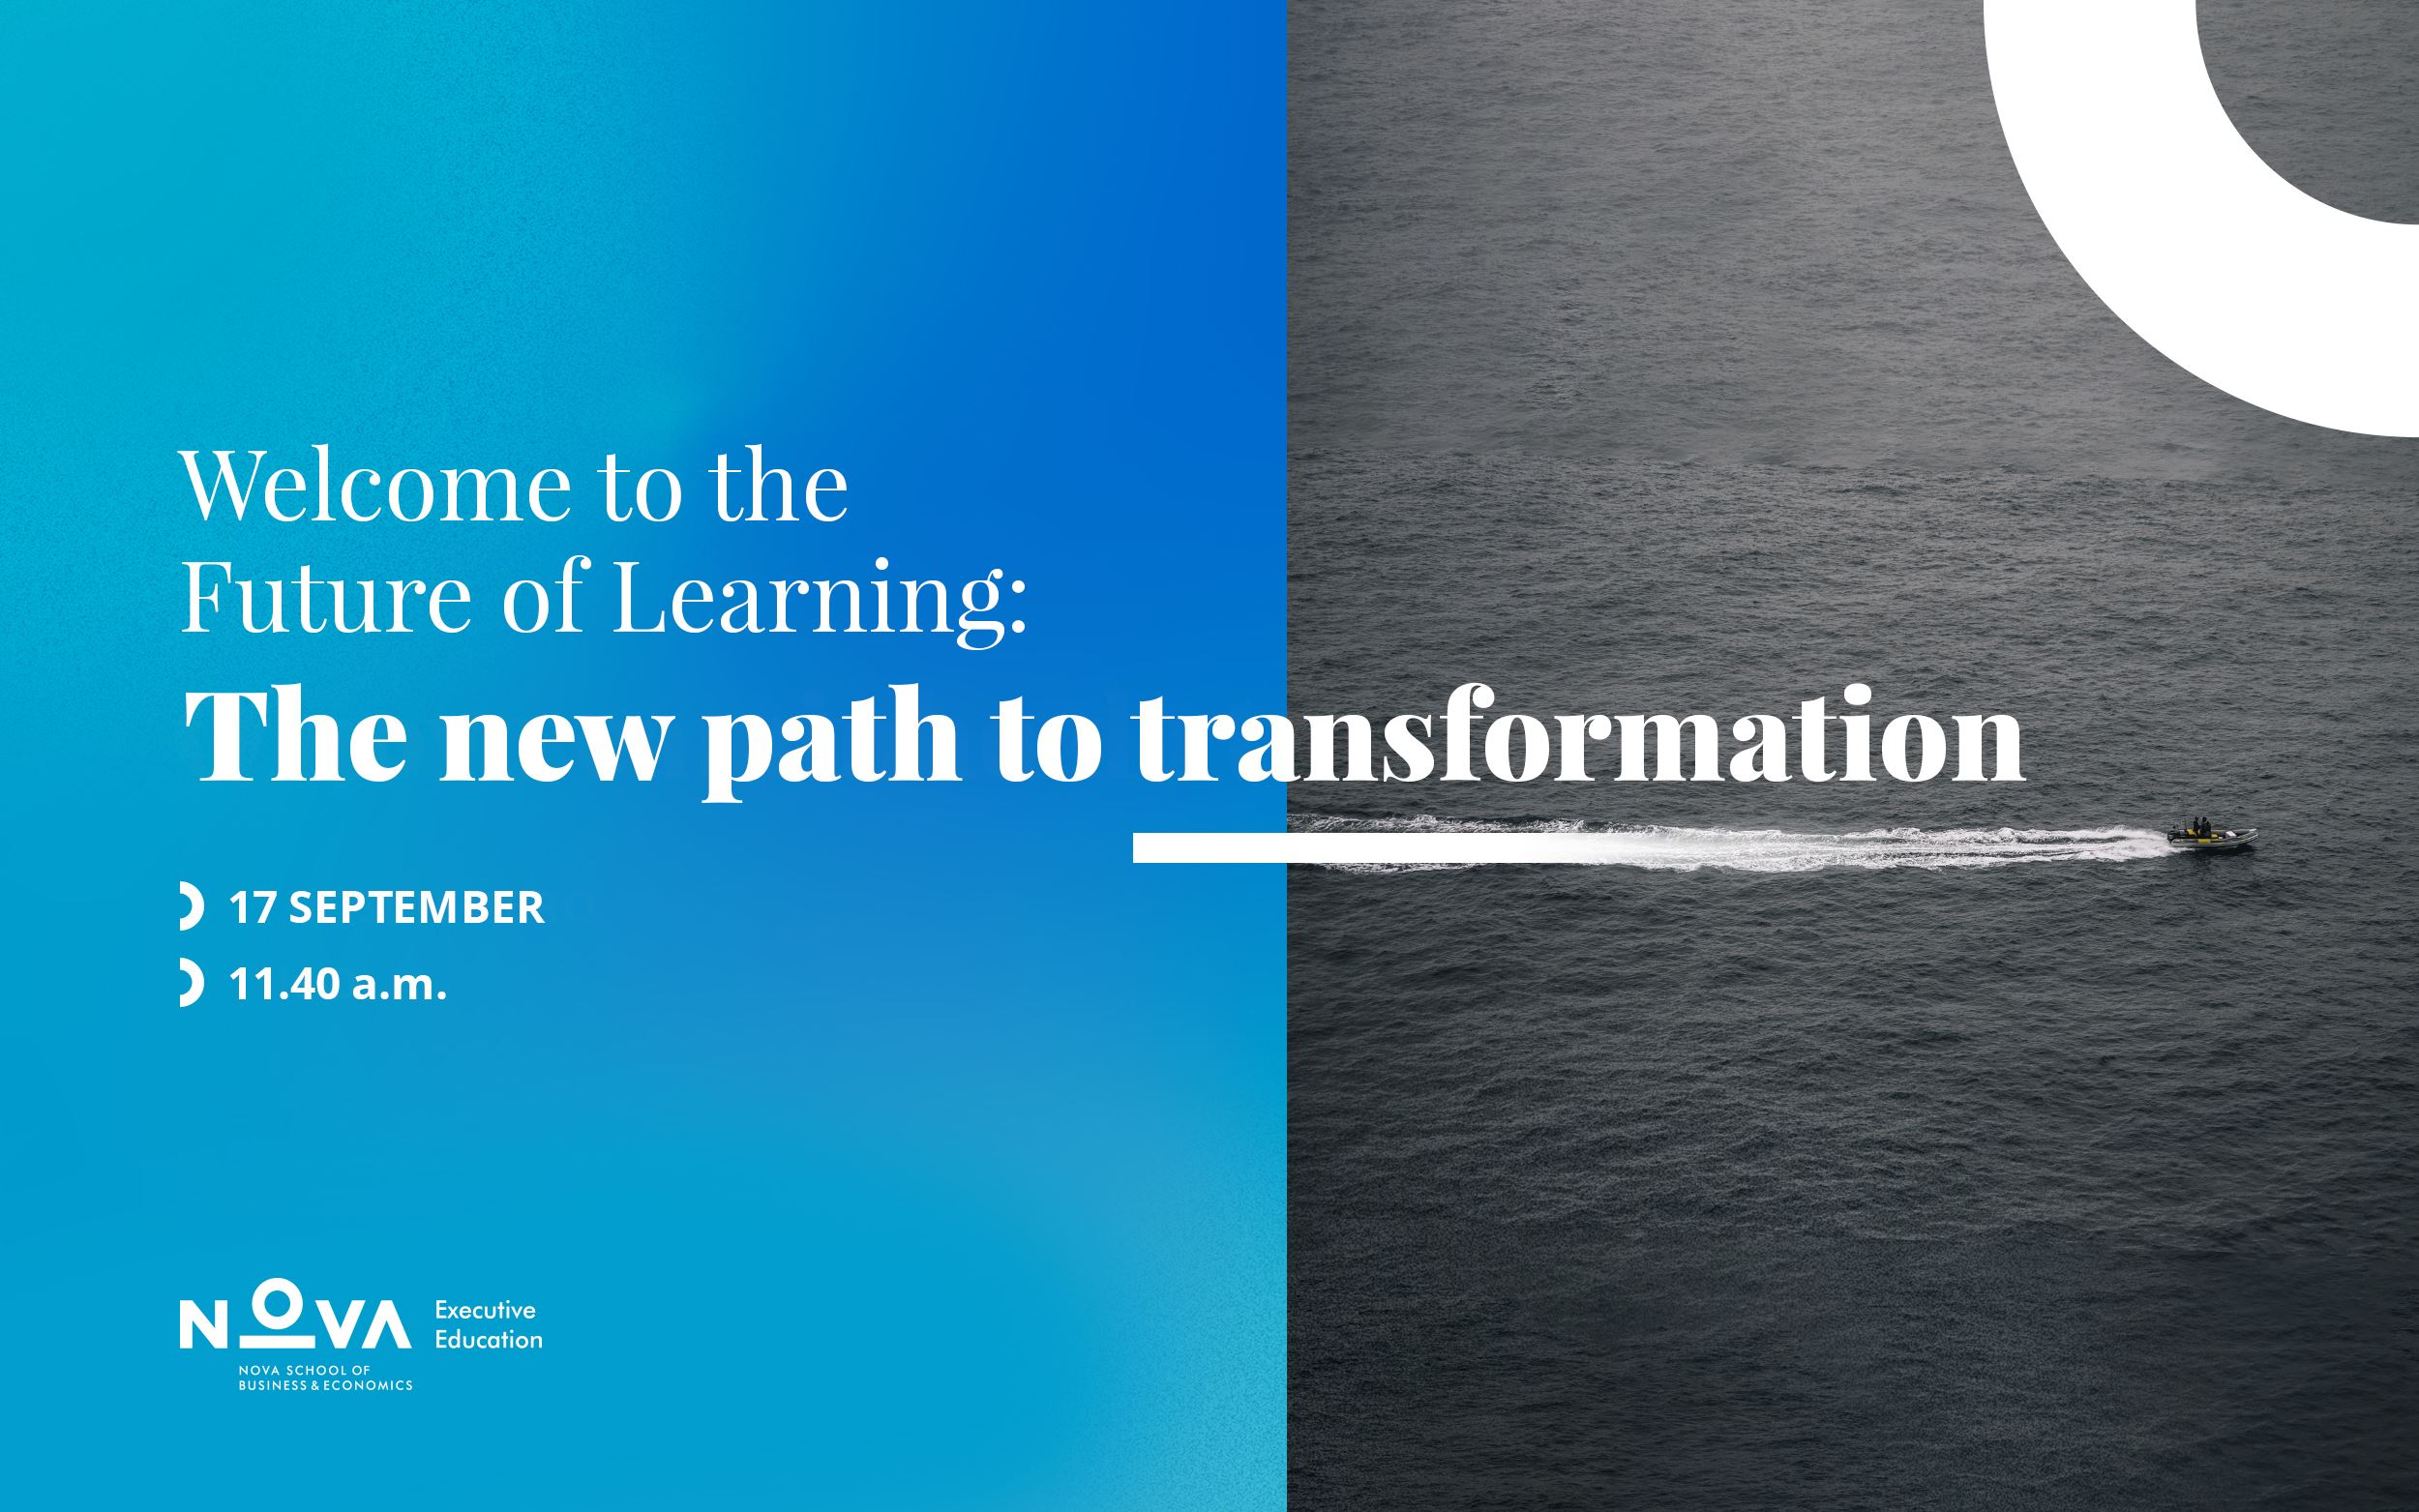 Welcome to the Future of Learning: the new path to transformation